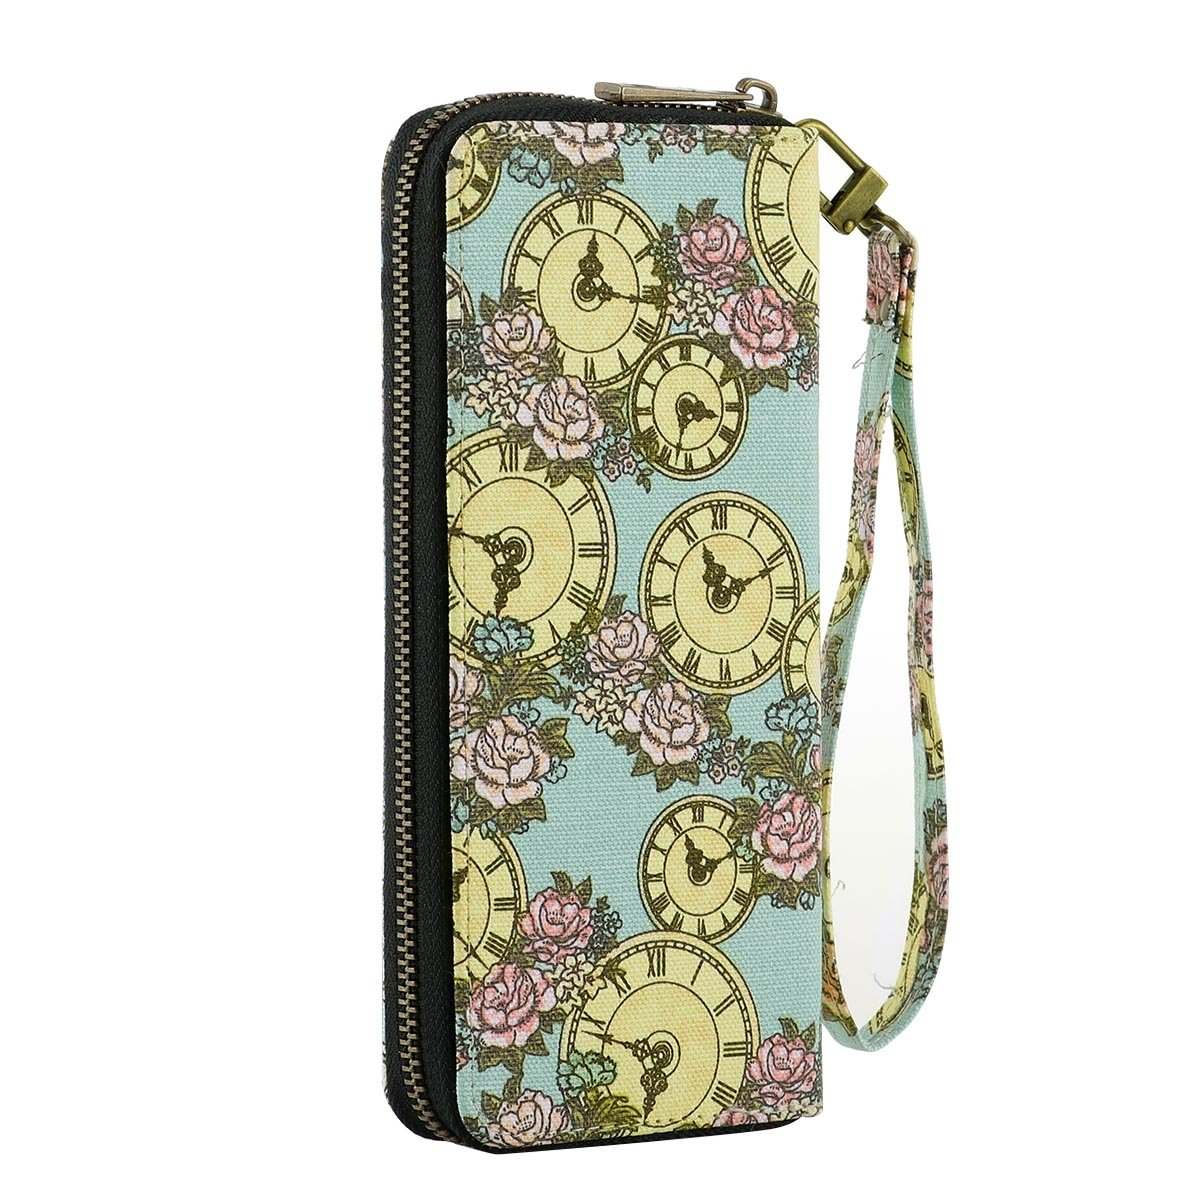 Wallets for Women Large Capacity Lady Clutch Purse Card Holder Organizer with Wristlet for Card, Cellphone, Coin, Cash (Clock)